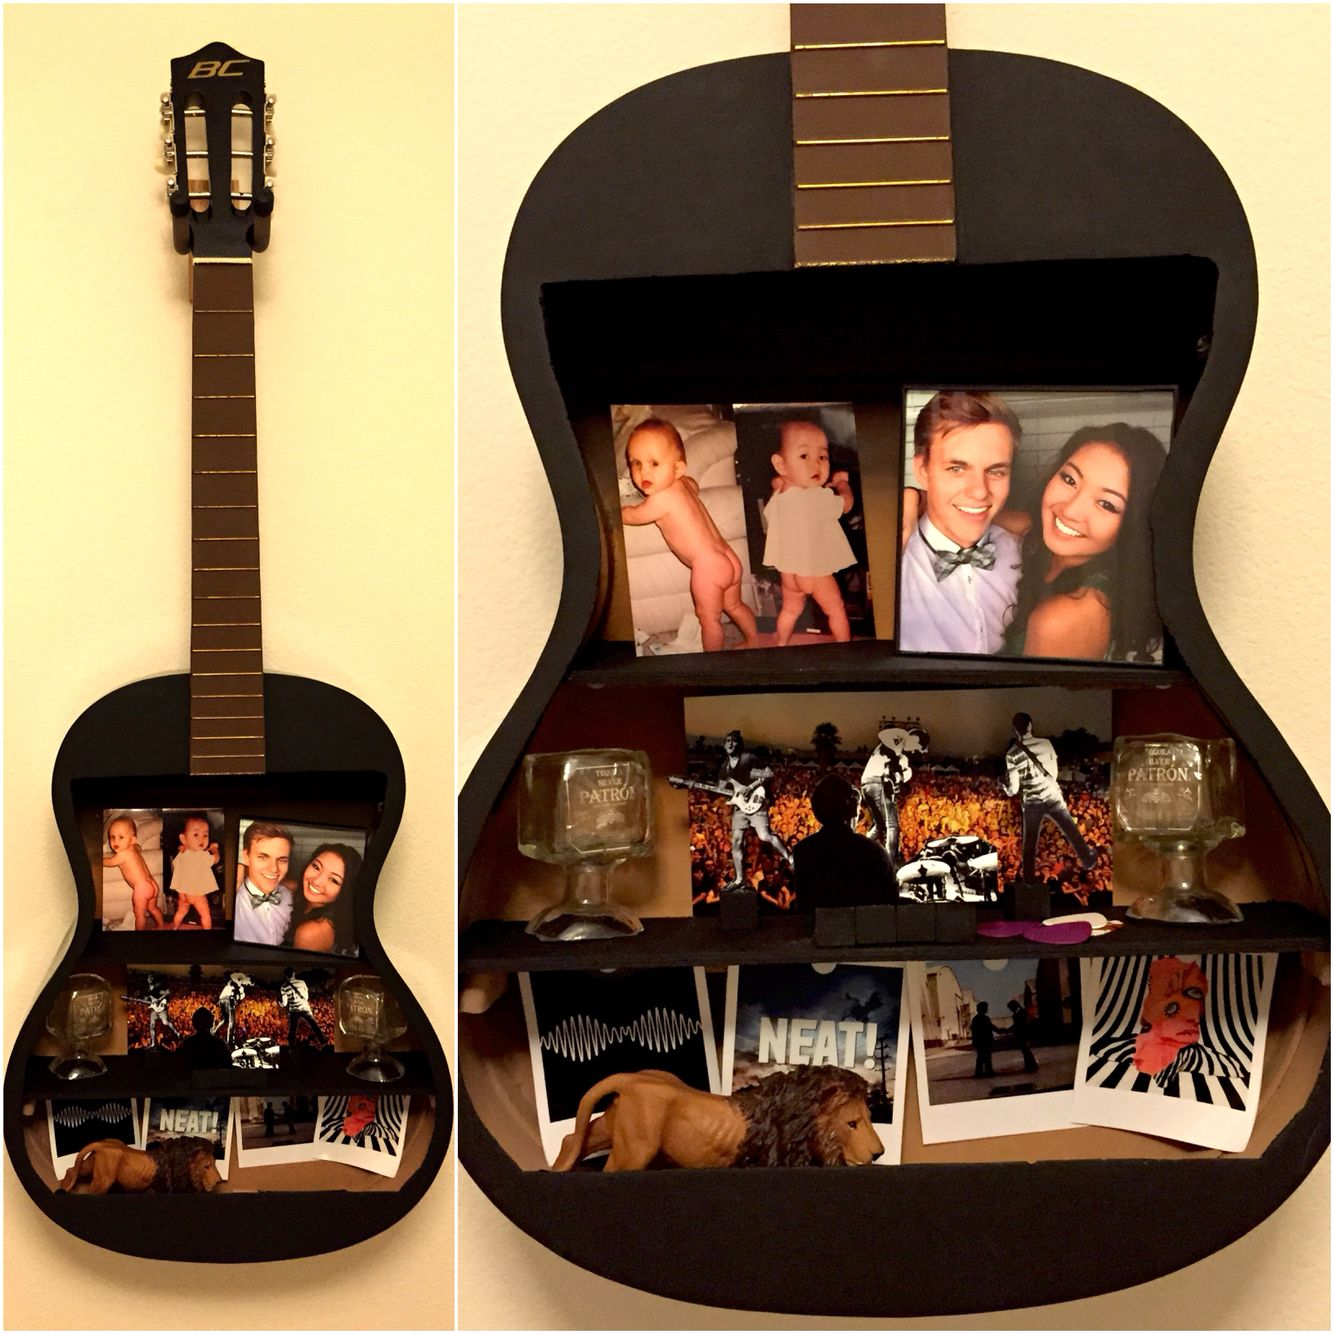 Boyfriend Musician Guy Diy Gift Guitar Shelf Diy Gifts For